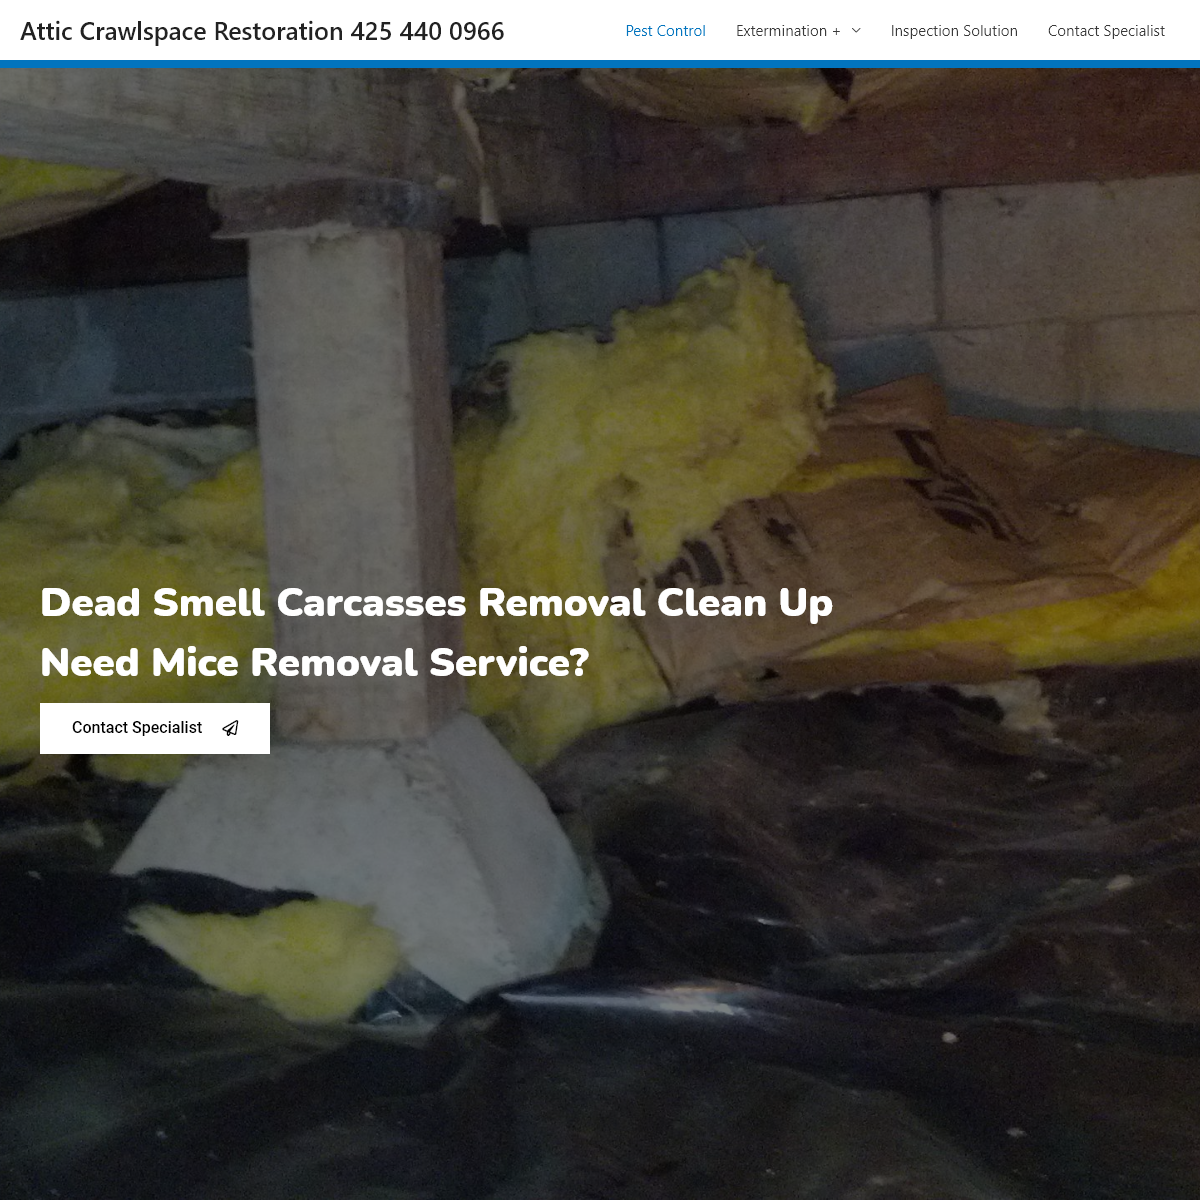 Attic Crawlspace Restoration 425 440 0966 – Rat Mice PROBLEMS Extermination Control Trapping & Removal Service- INFESTATION IN